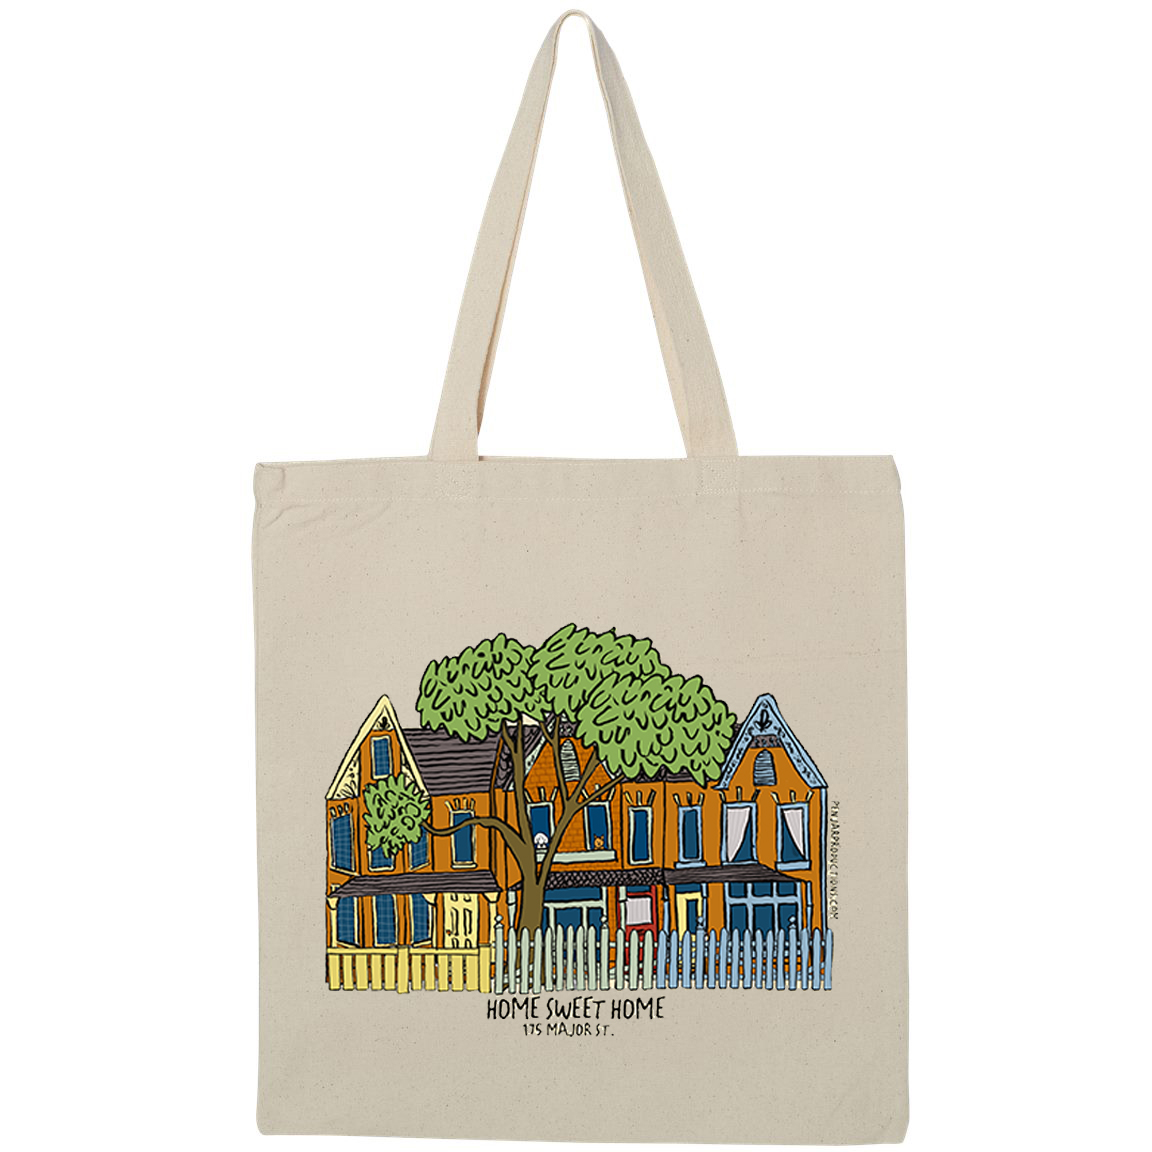 Your home on a tote, custom tote bag by Alison Garwood-Jones